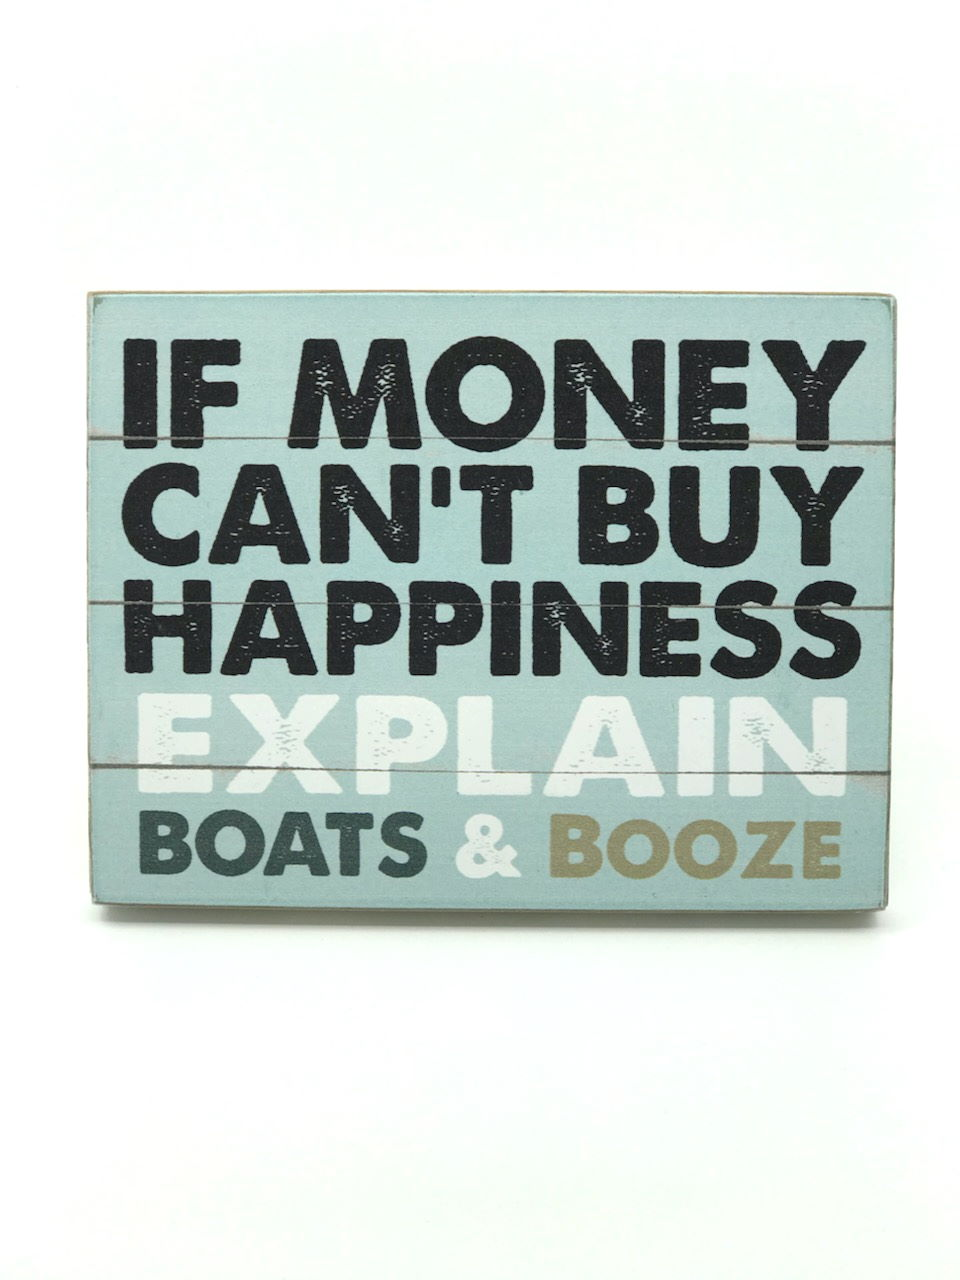 Fun Block Boats  - Booze